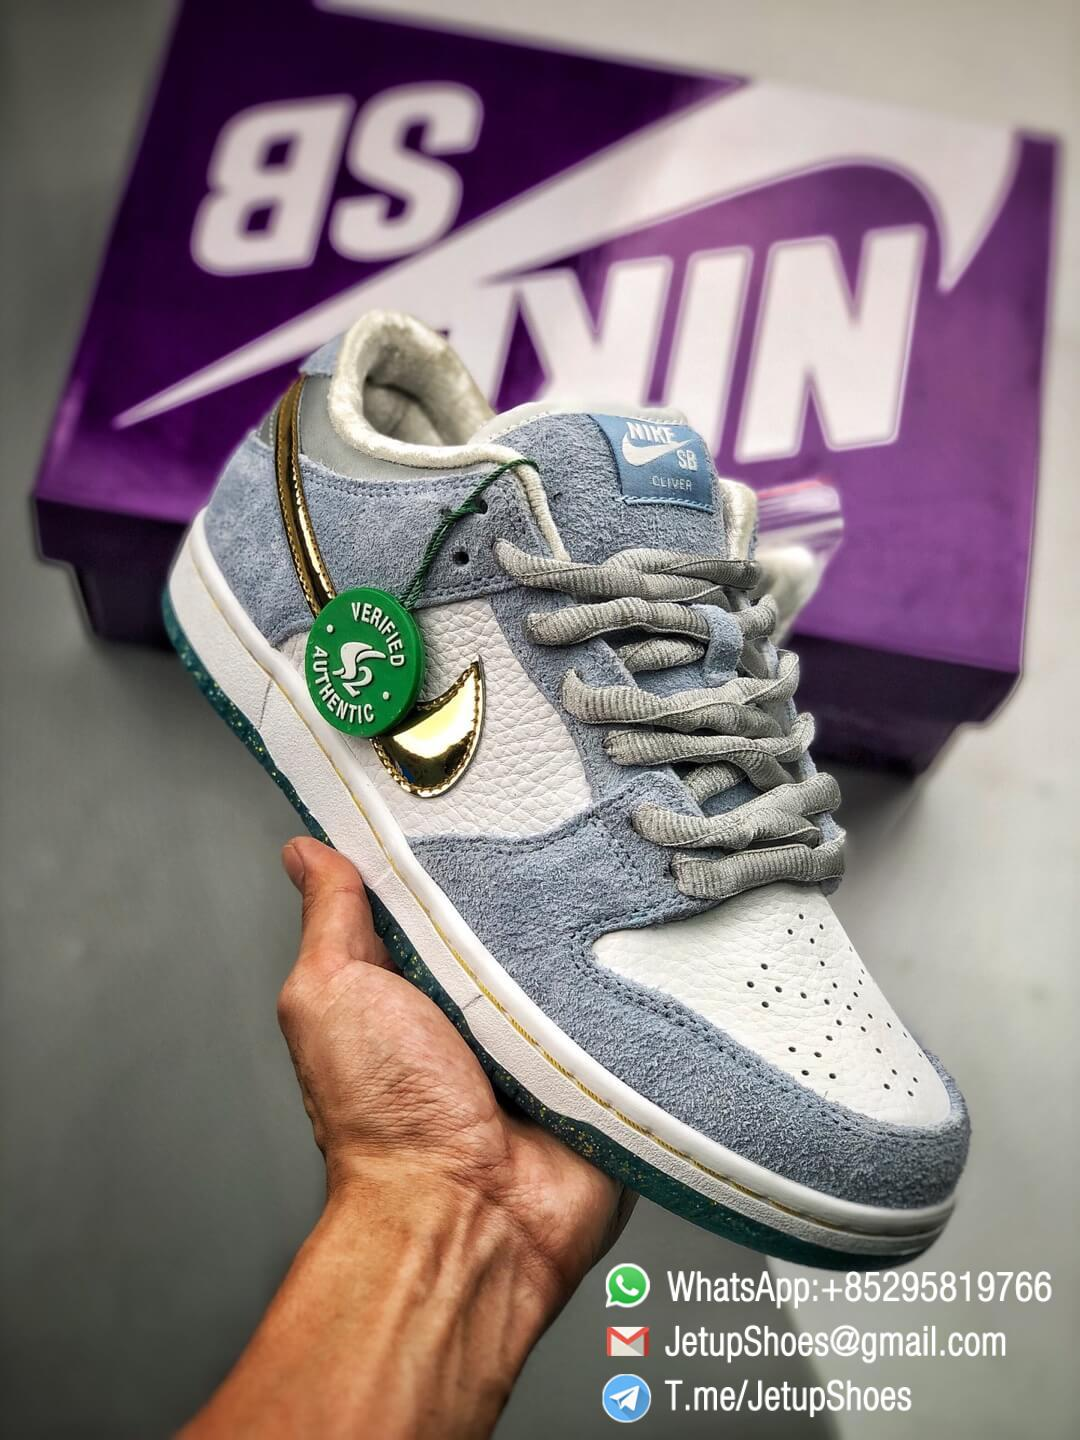 Best Replica Sneakers Sean Cliver x Nike Dunk Low SB Holiday Special DC9936 100 01